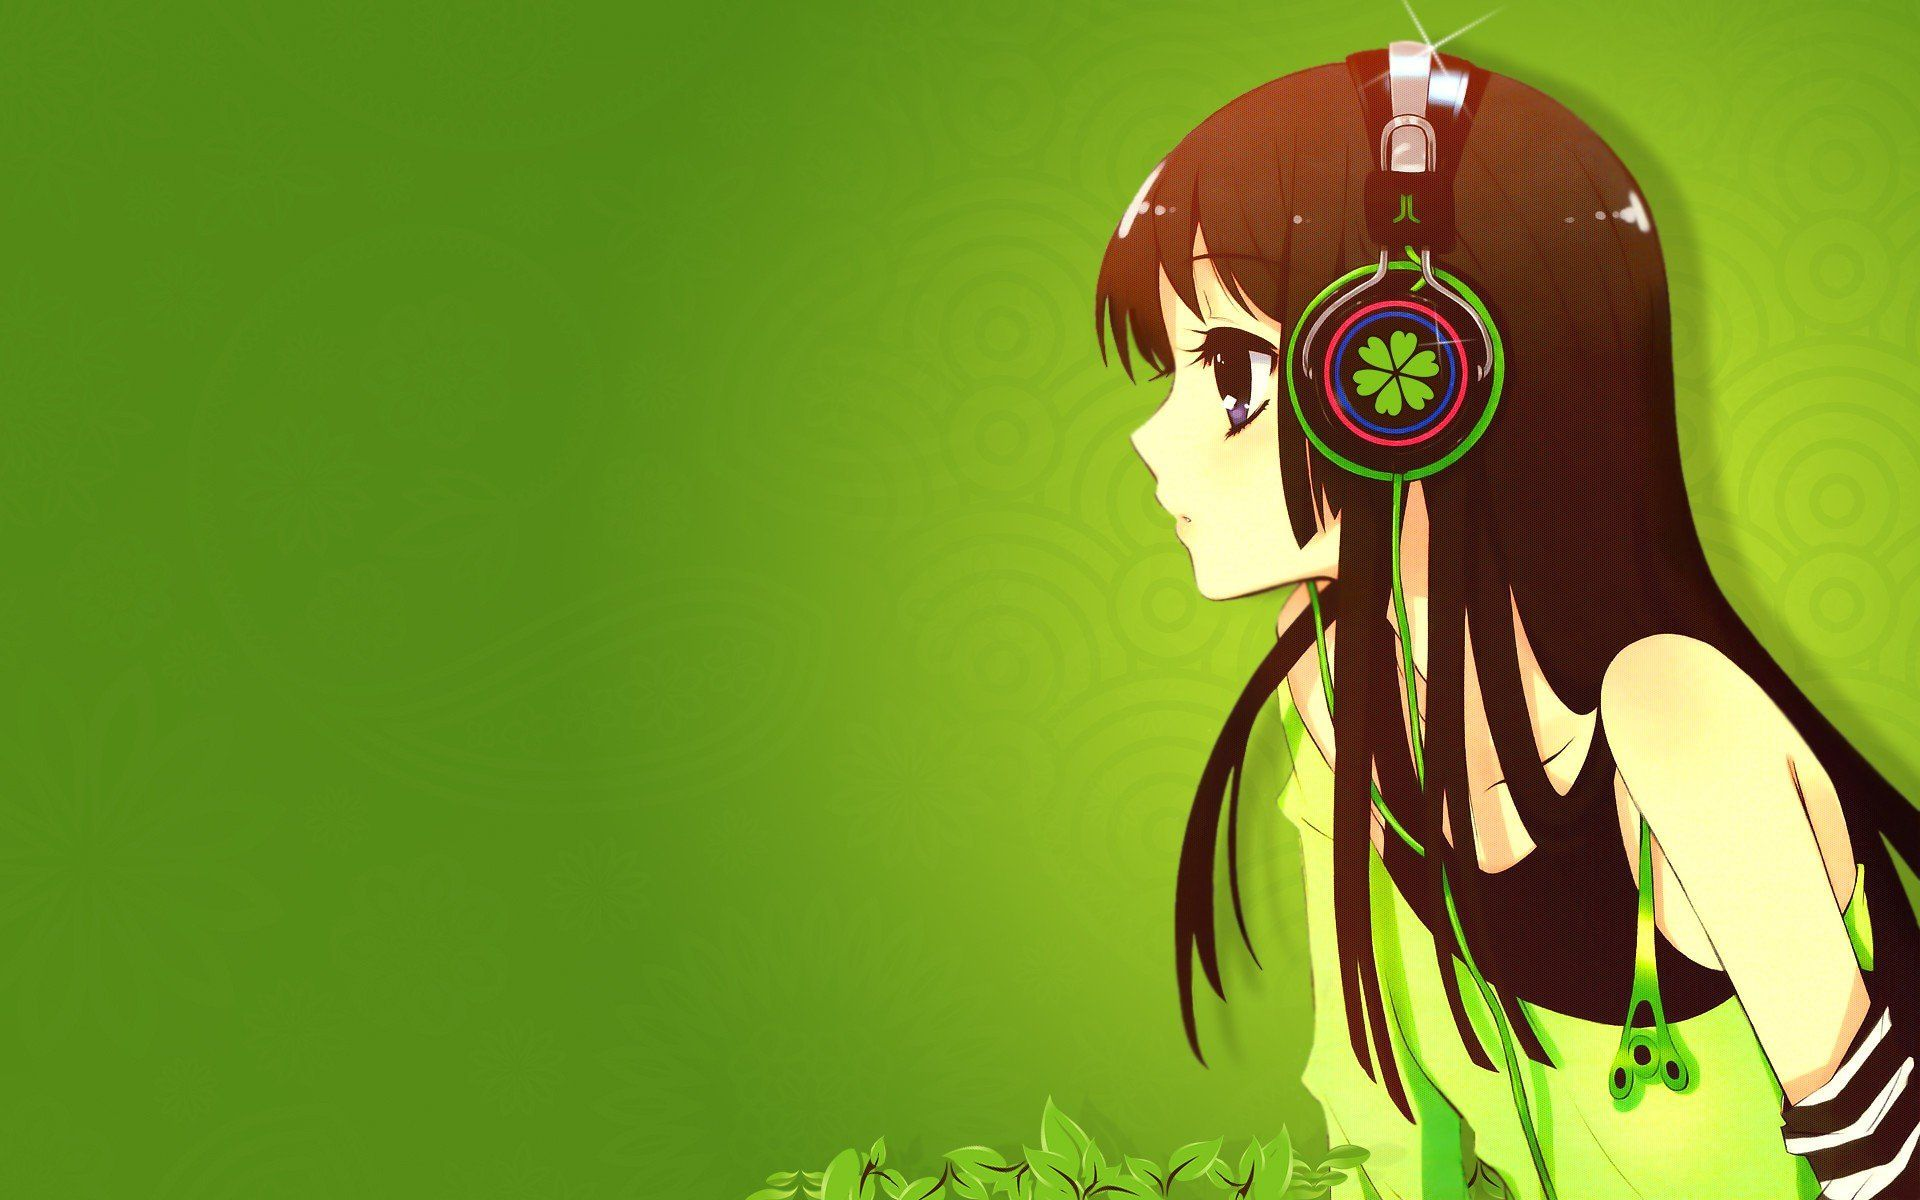 Wallpaper Backgrounds Anime Group (69+)